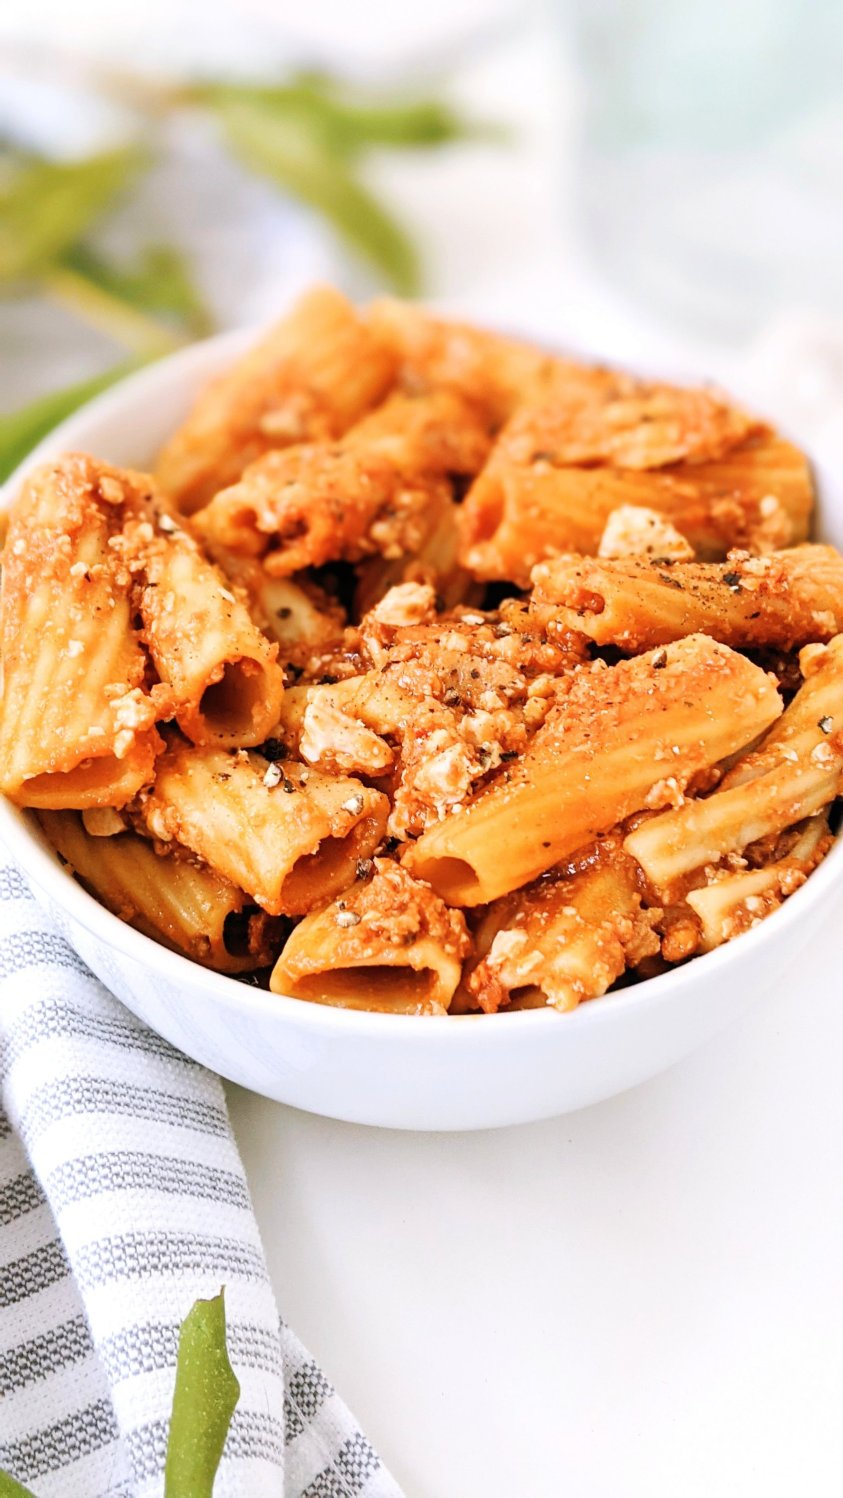 pasta with tofu bolognese sauce recipe healthy vegan spag bol tofu meat sauce for noodles pasta rigatoni bolognese with tofu healthy italian meals meatless